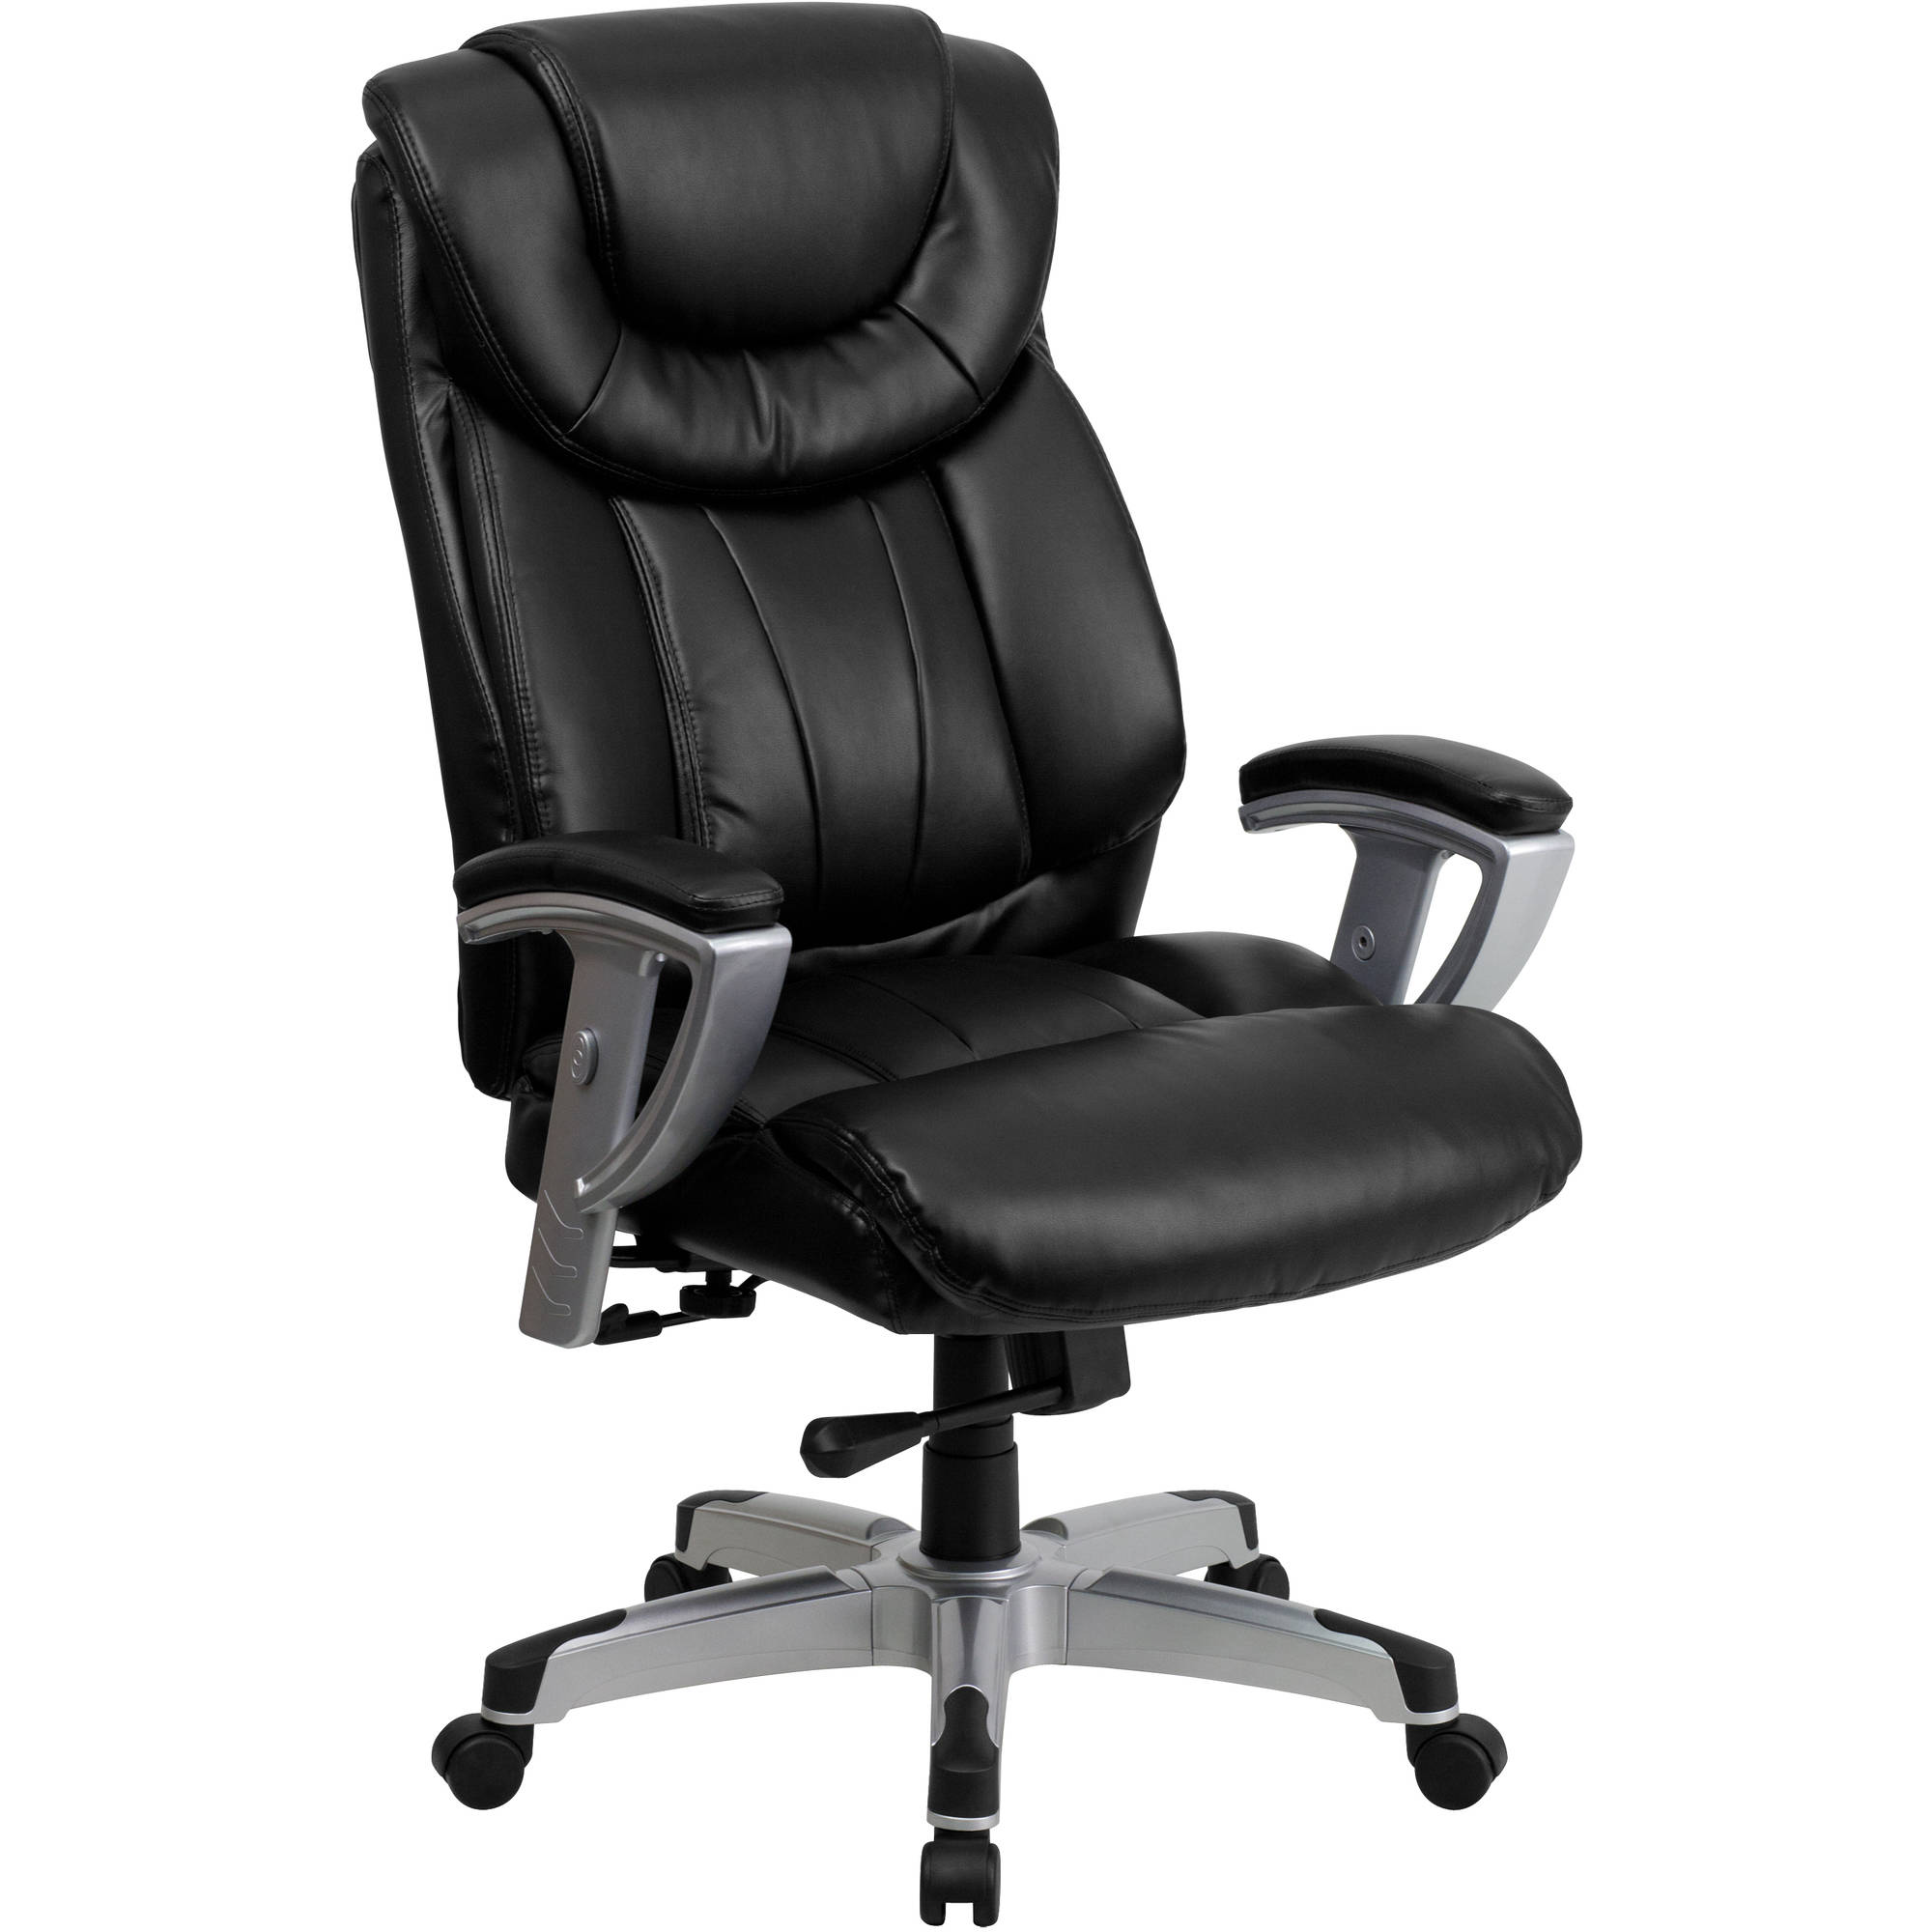 Flash Furniture HERCULES Series 400 lb Capacity Big and Tall Black Leather Executive Swivel Office Chair with Height and Width Adjustable Arms